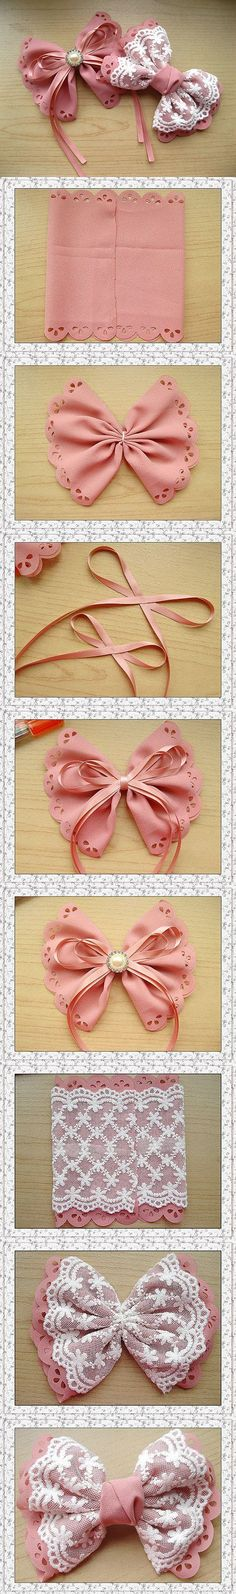 Lovely hair bows, so cute!